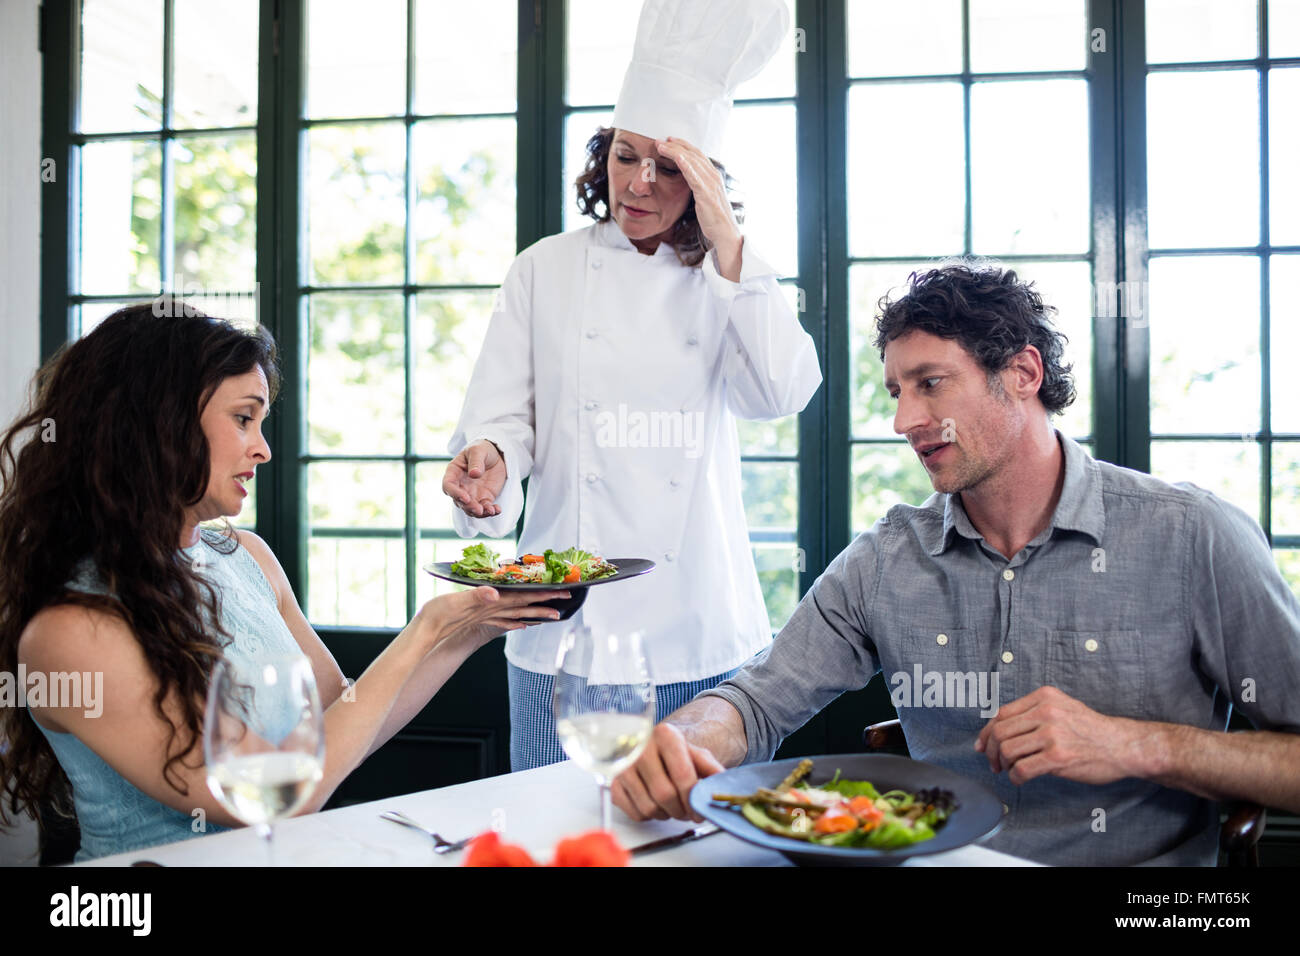 Couple complaining about the food to chef - Stock Image